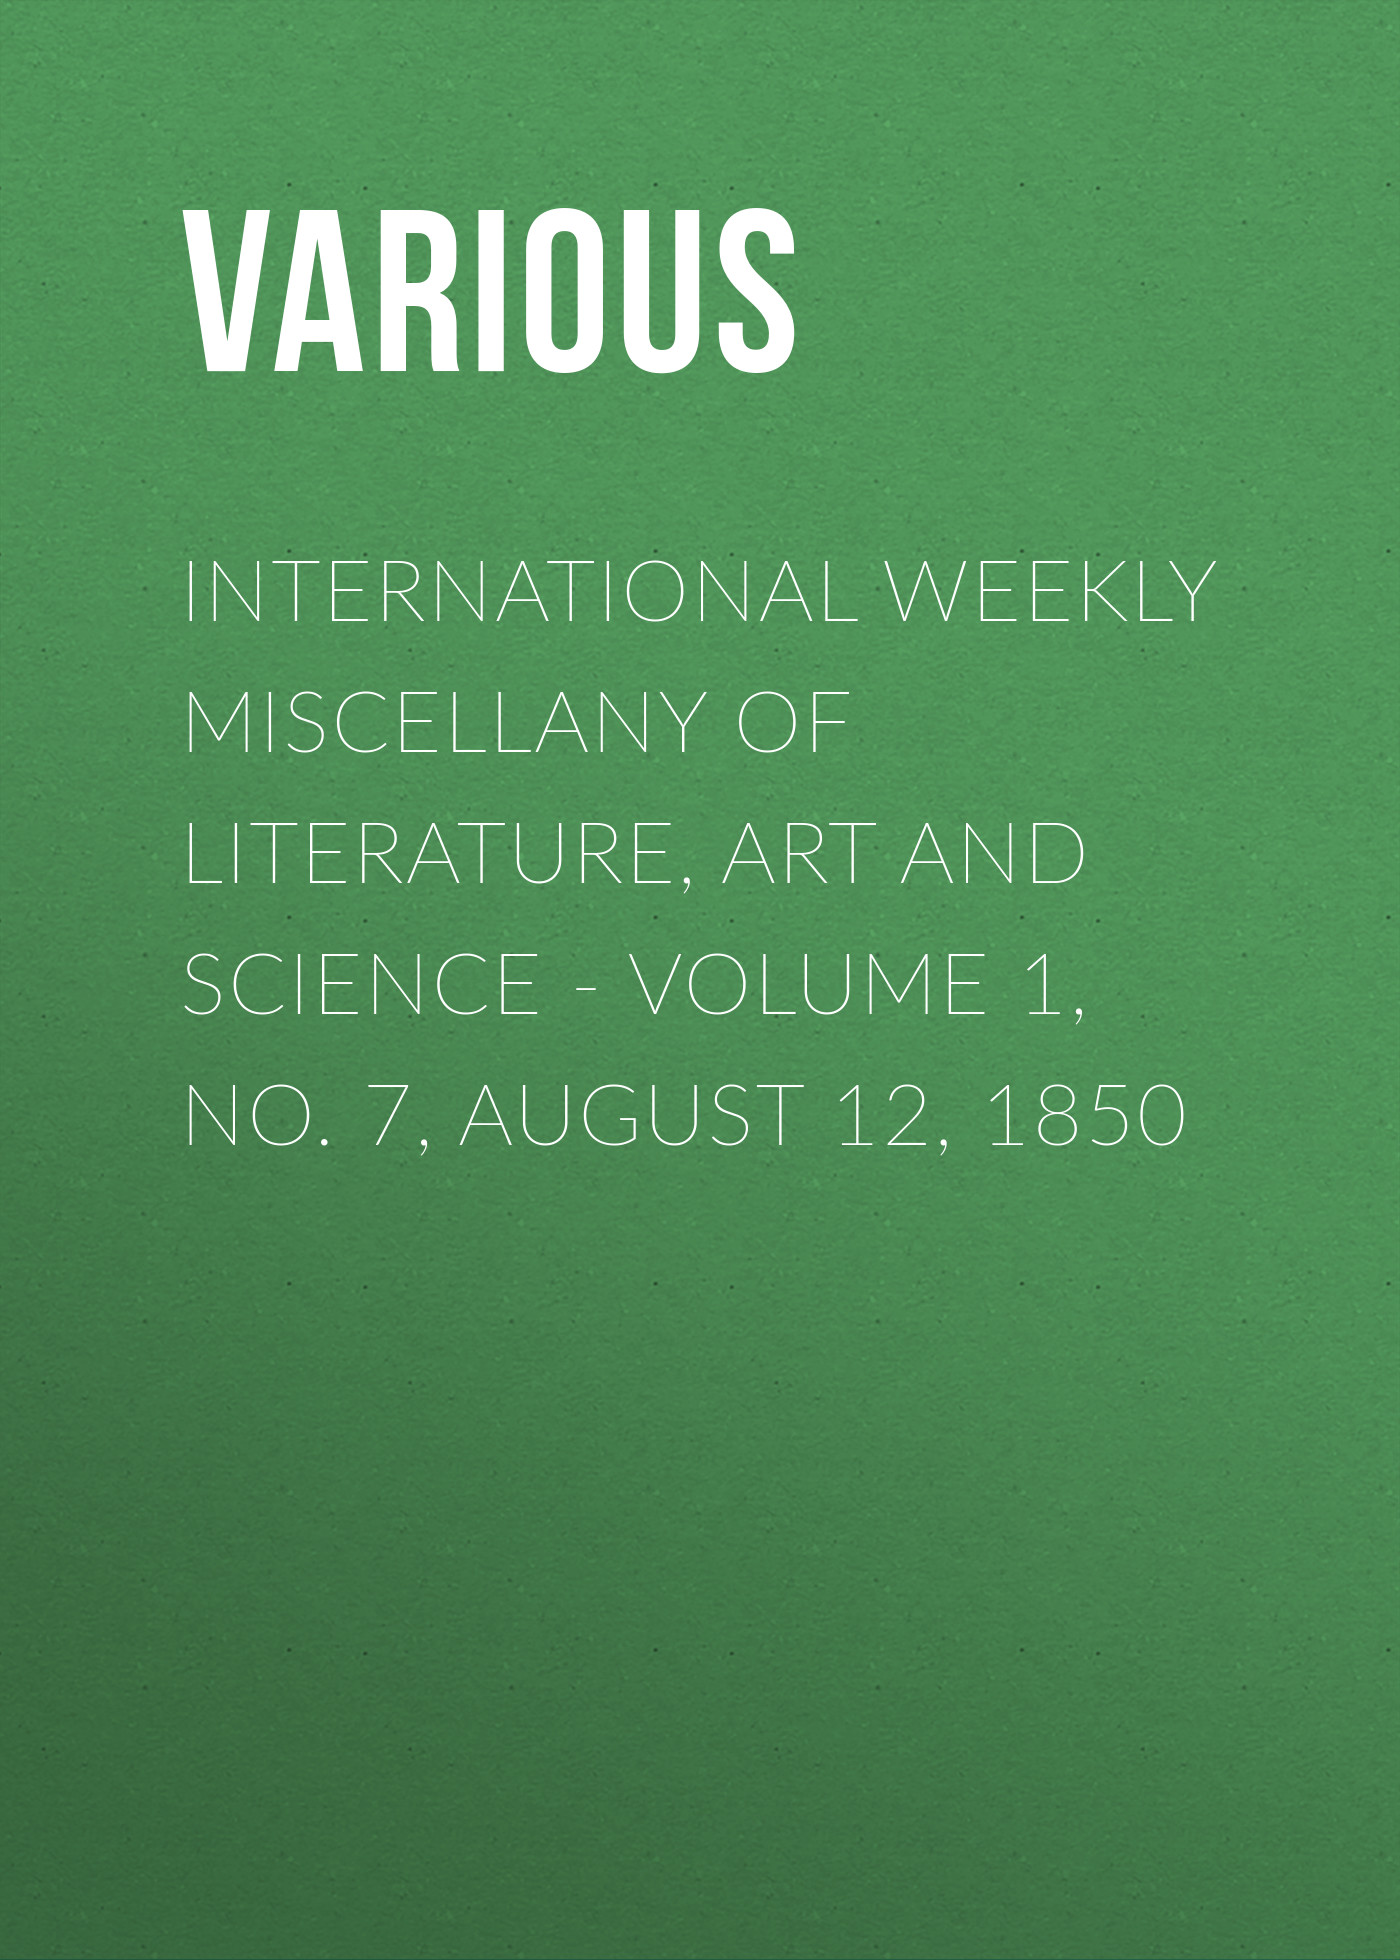 International Weekly Miscellany of Literature, Art and Science - Volume 1, No. 7, August 12, 1850